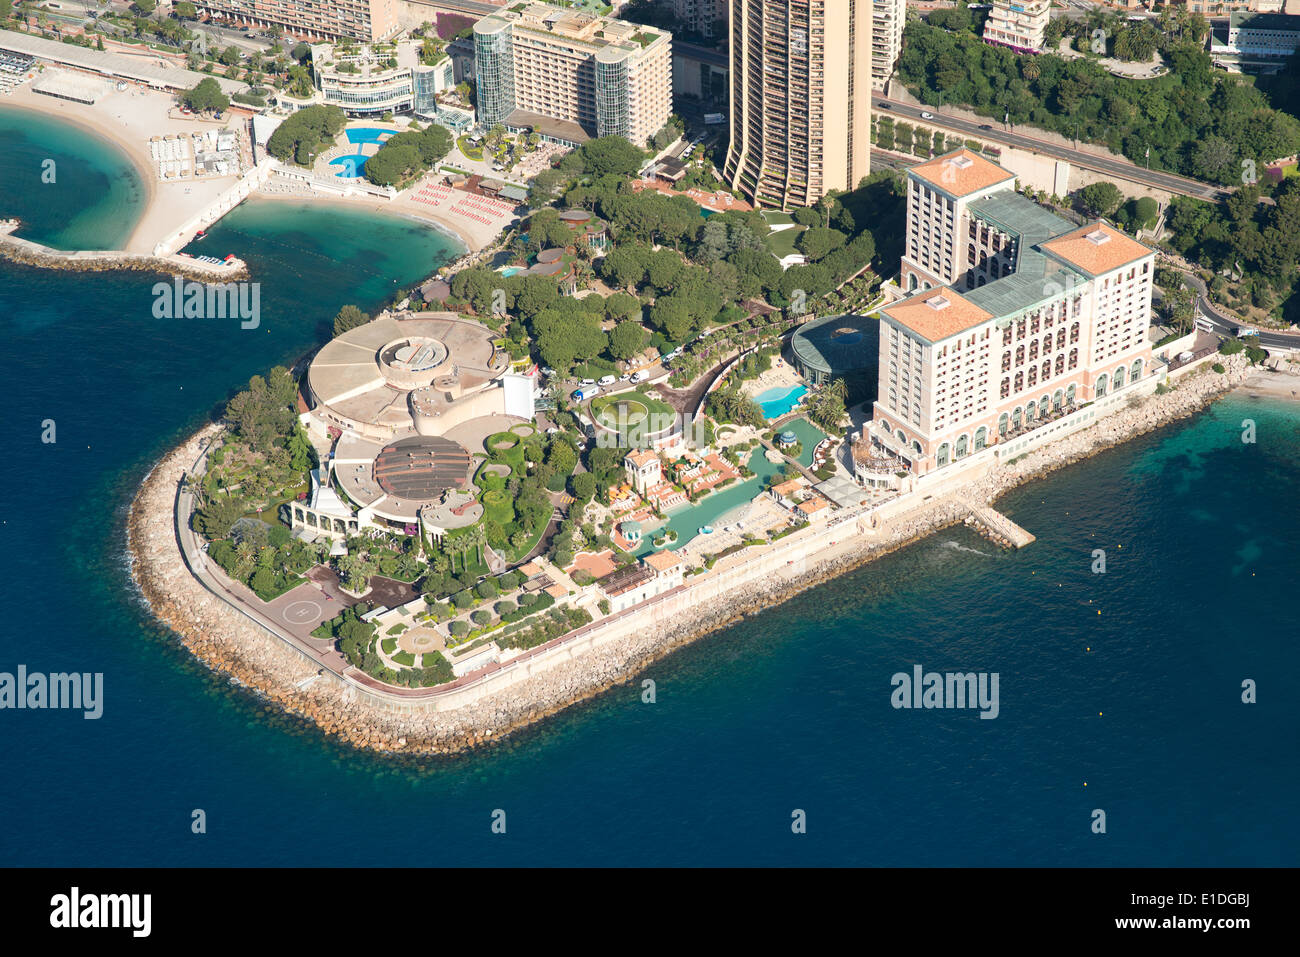 MONTE-CARLO BAY HOTEL AND RESORT (built on reclaimed land) (aerial view). Larvotto, Principality of Monaco. - Stock Image